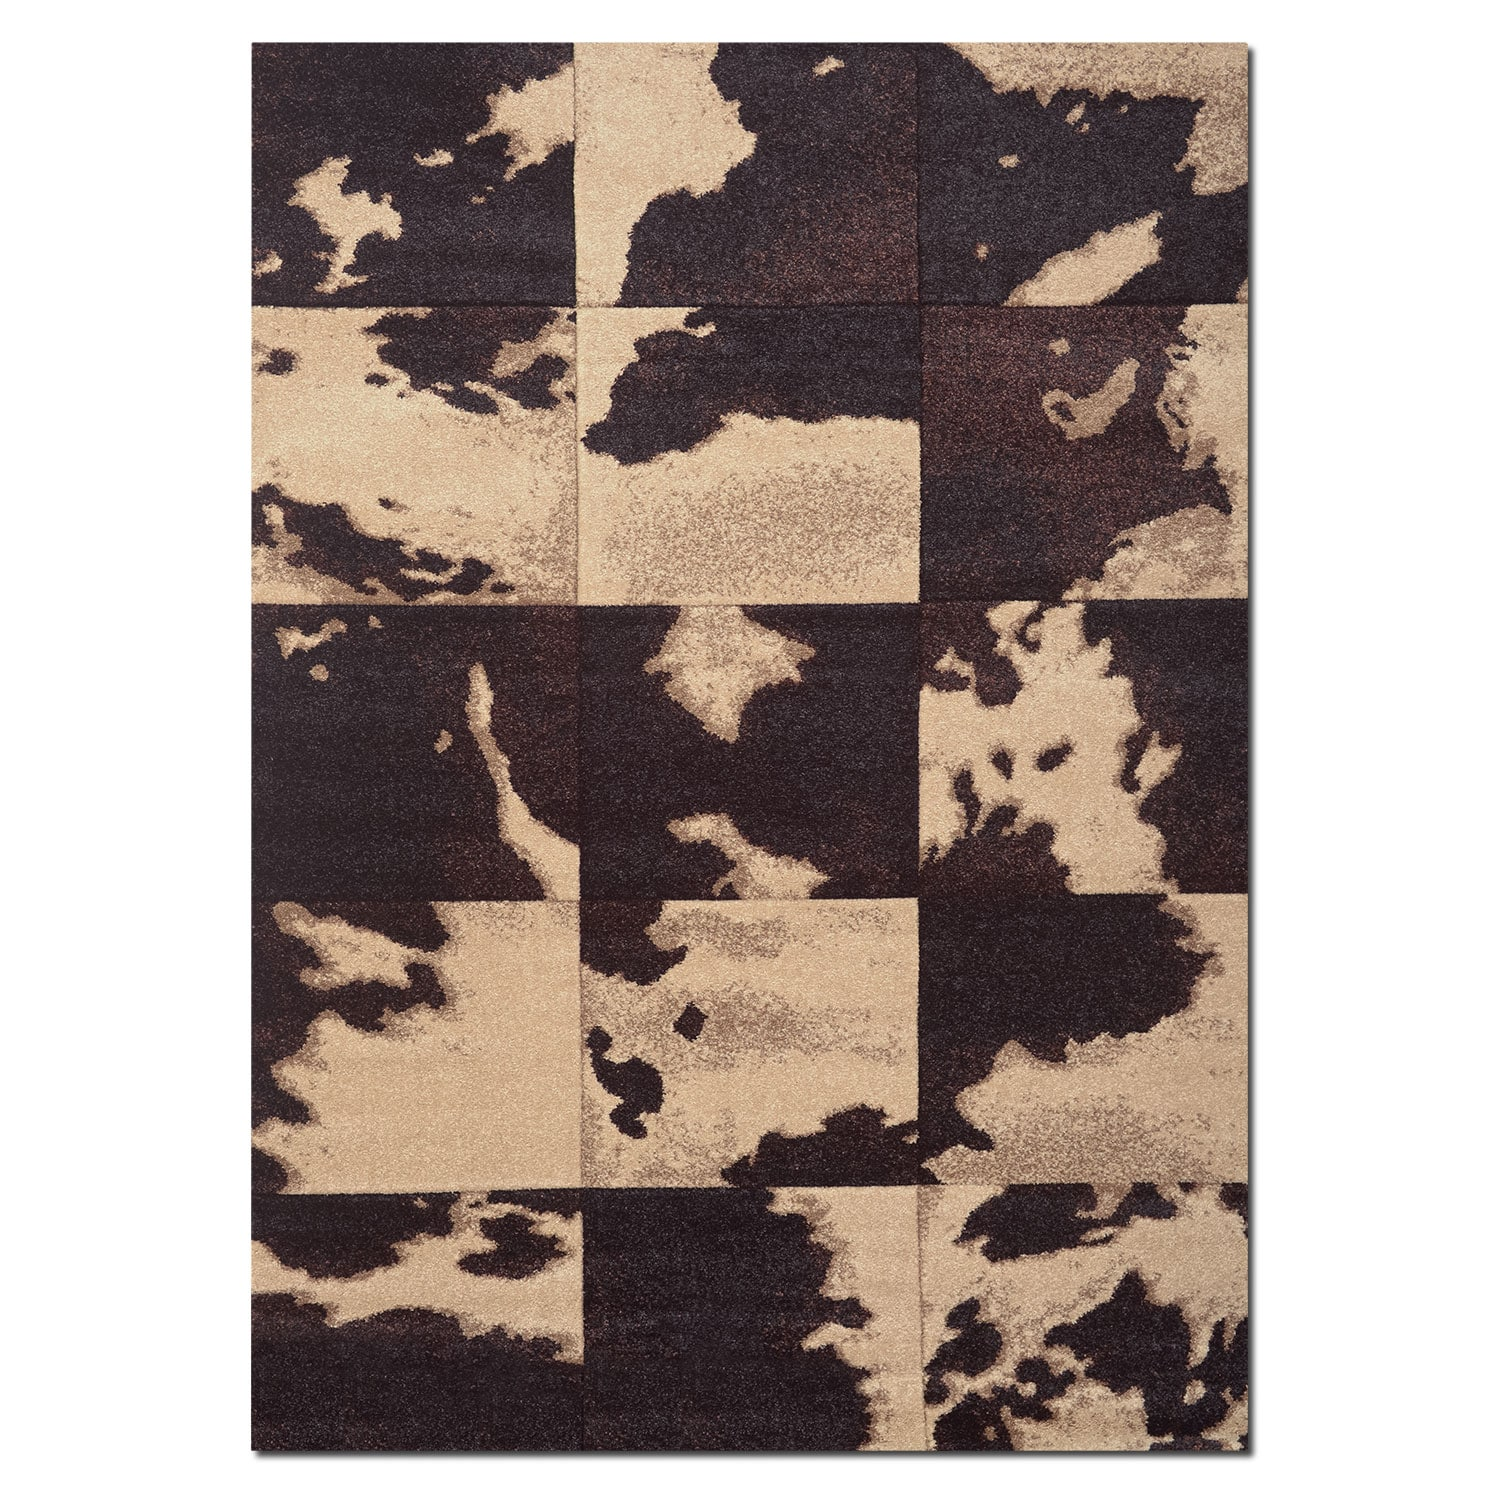 Sedona 8' x 10' Area Rug - Chocolate